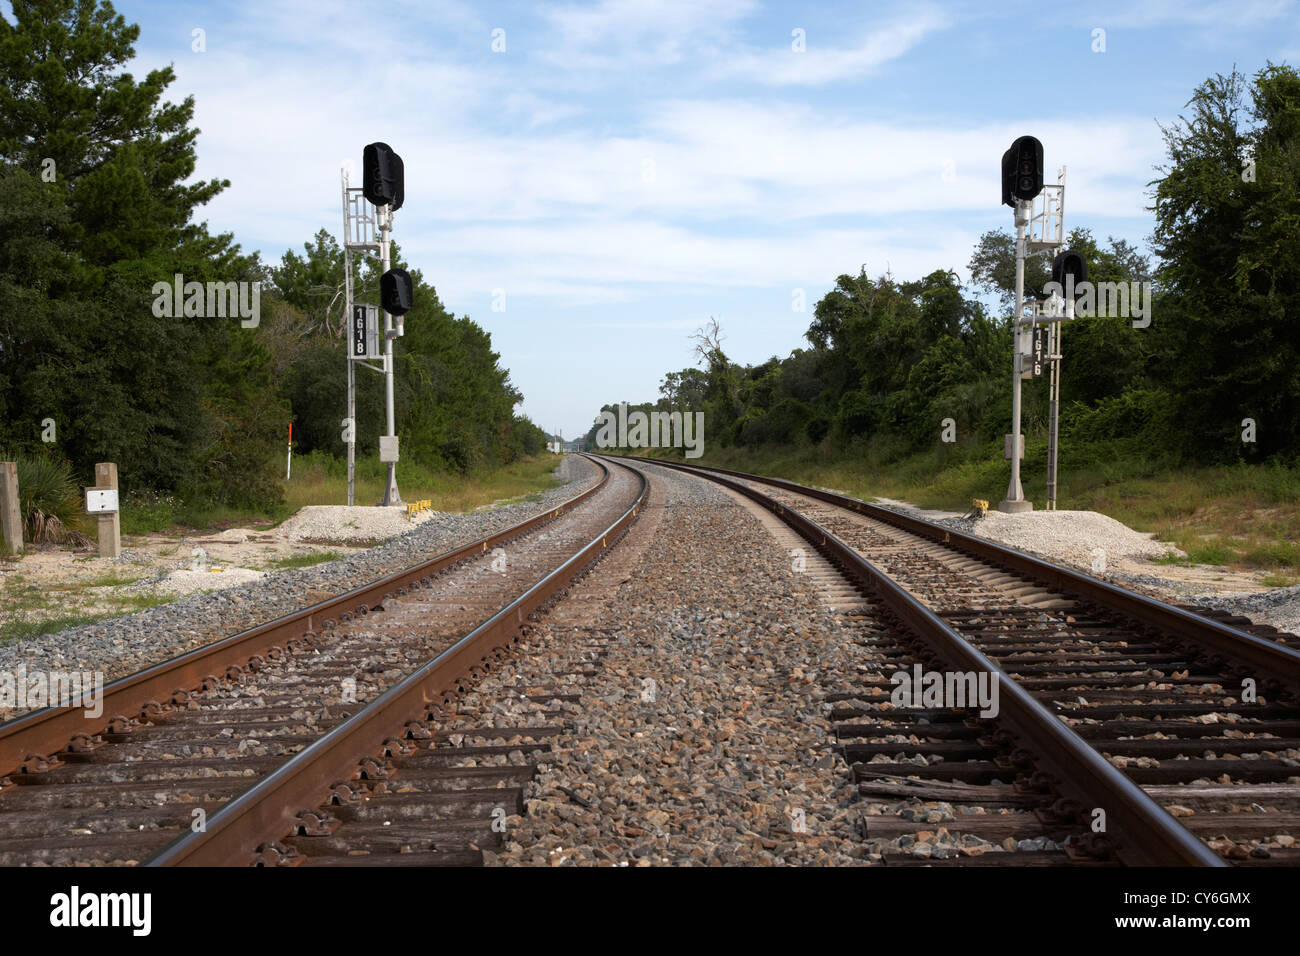 dual train tracks railroad florida usa - Stock Image